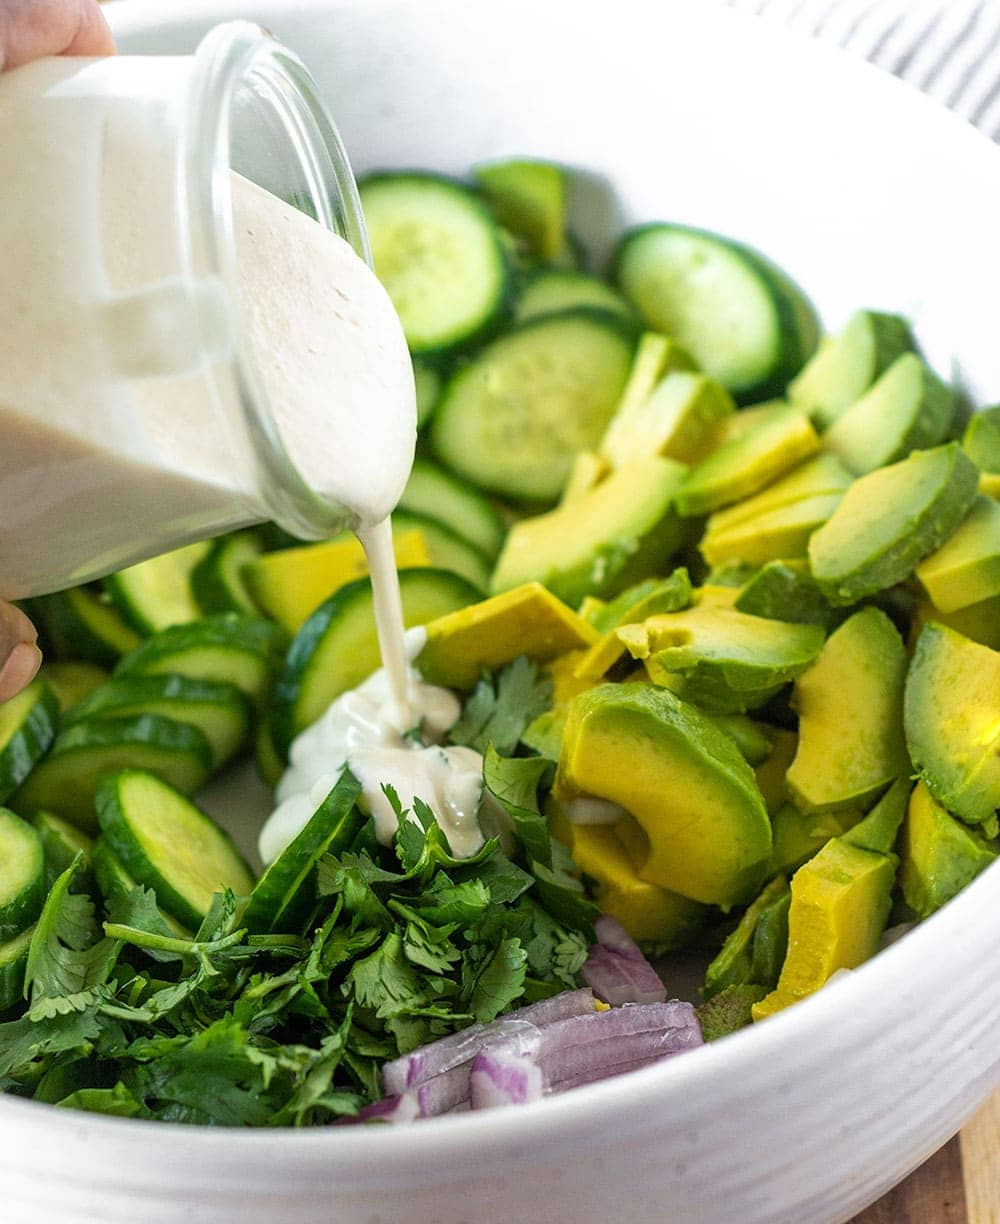 Cucumber avocado salad with dressing being pooured